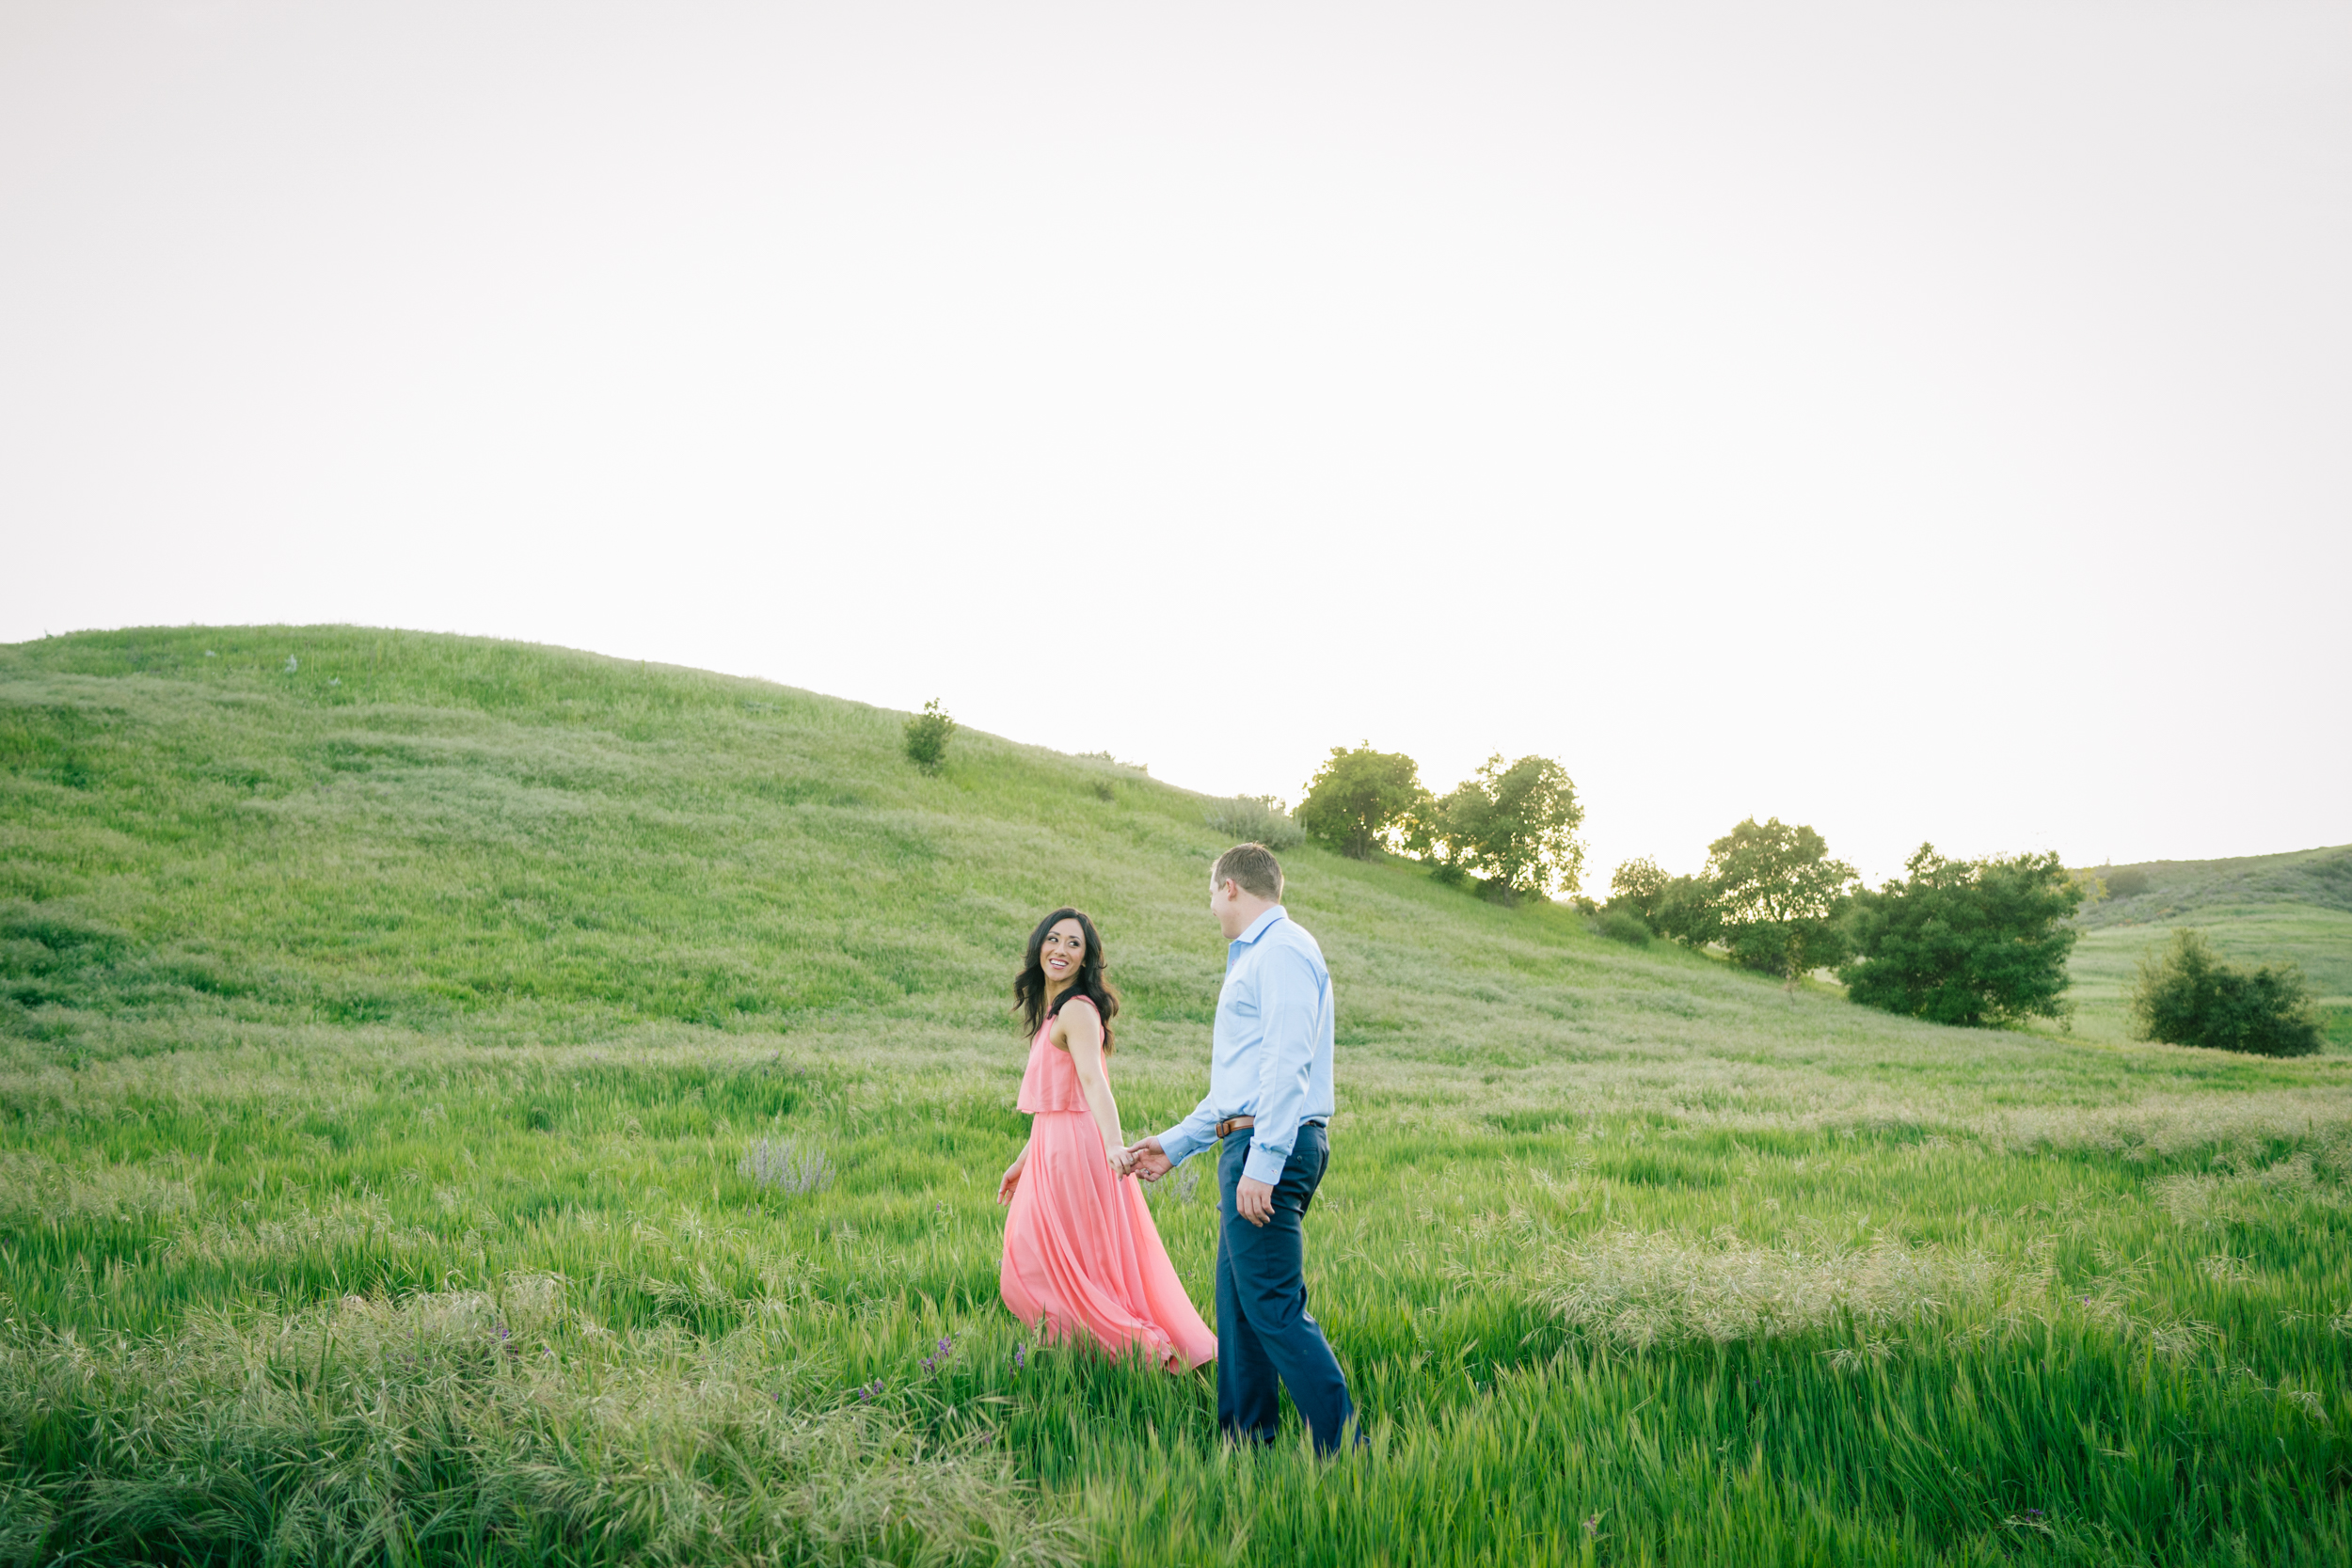 Thomas-F-Riley-Wilderness-Park-Engagement-0141.JPG